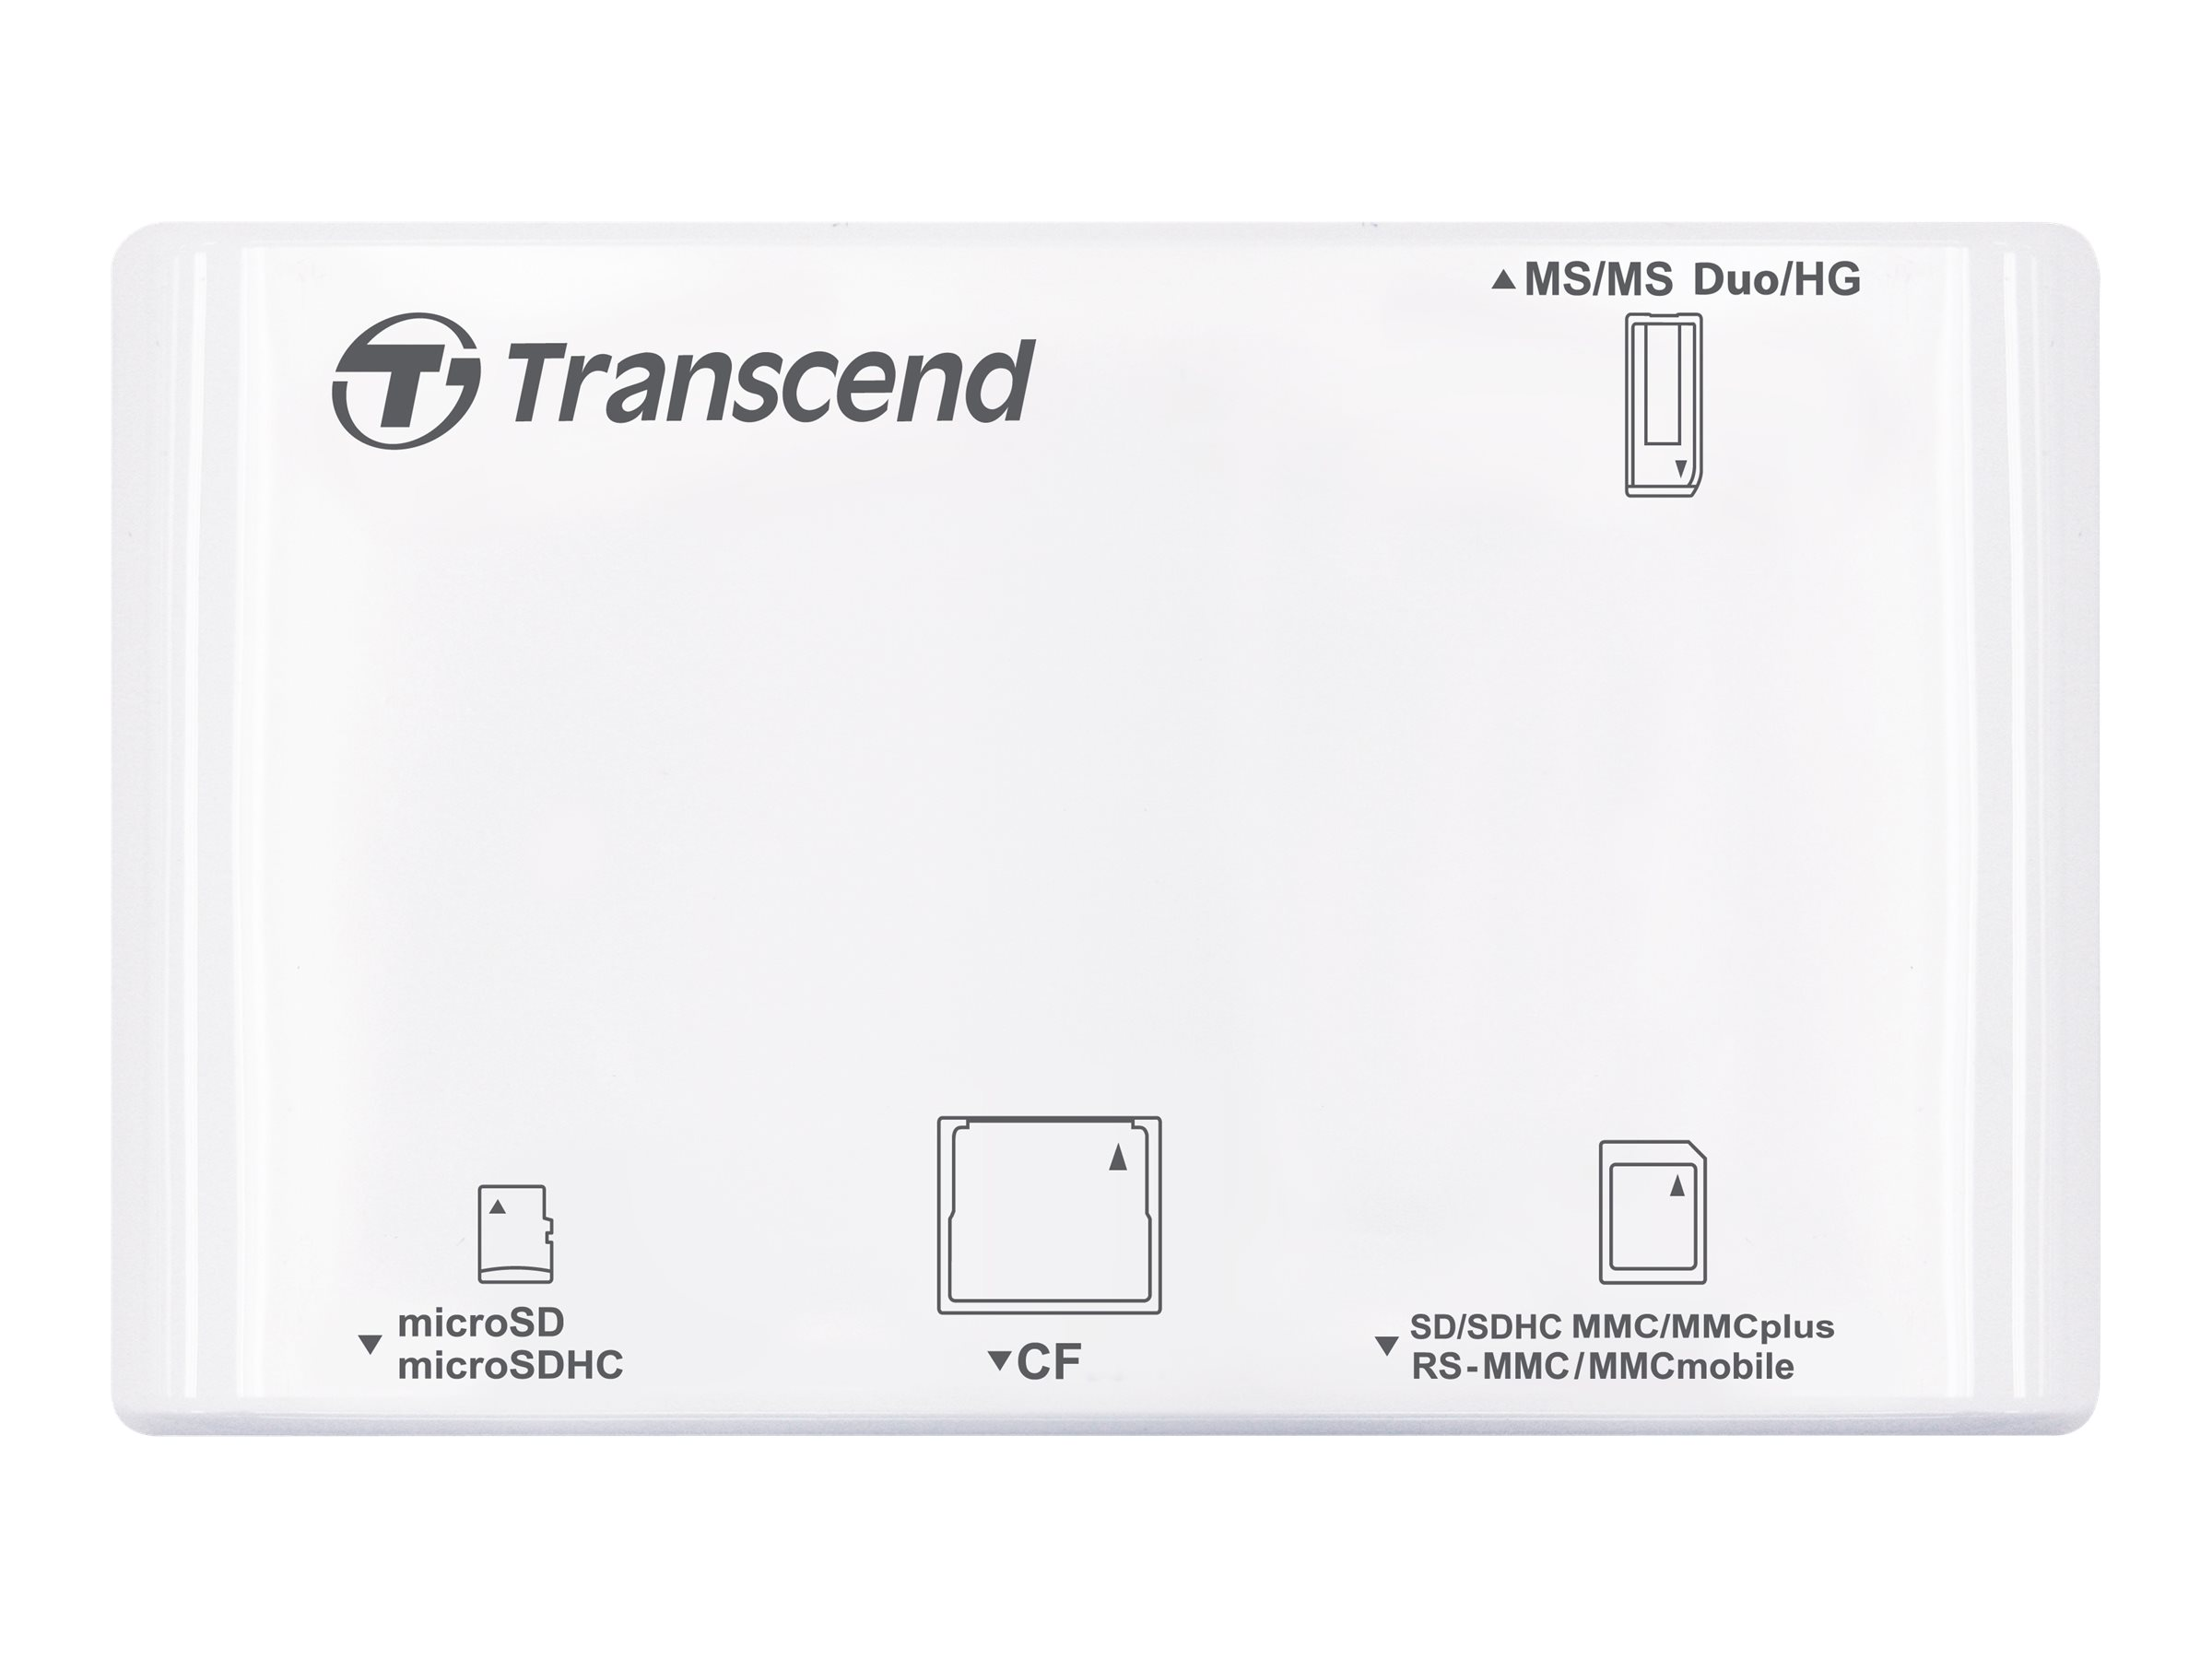 Transcend P8 - Kartenleser - 13 in 1 (CF I, MS, MS PRO, MMC, SD, MS Duo, MS PRO Duo, RS-MMC, MMCmobile, microSD, MMCplus, SDHC, MS Micro, microSDHC, MS PRO-HG Duo) - USB 2.0